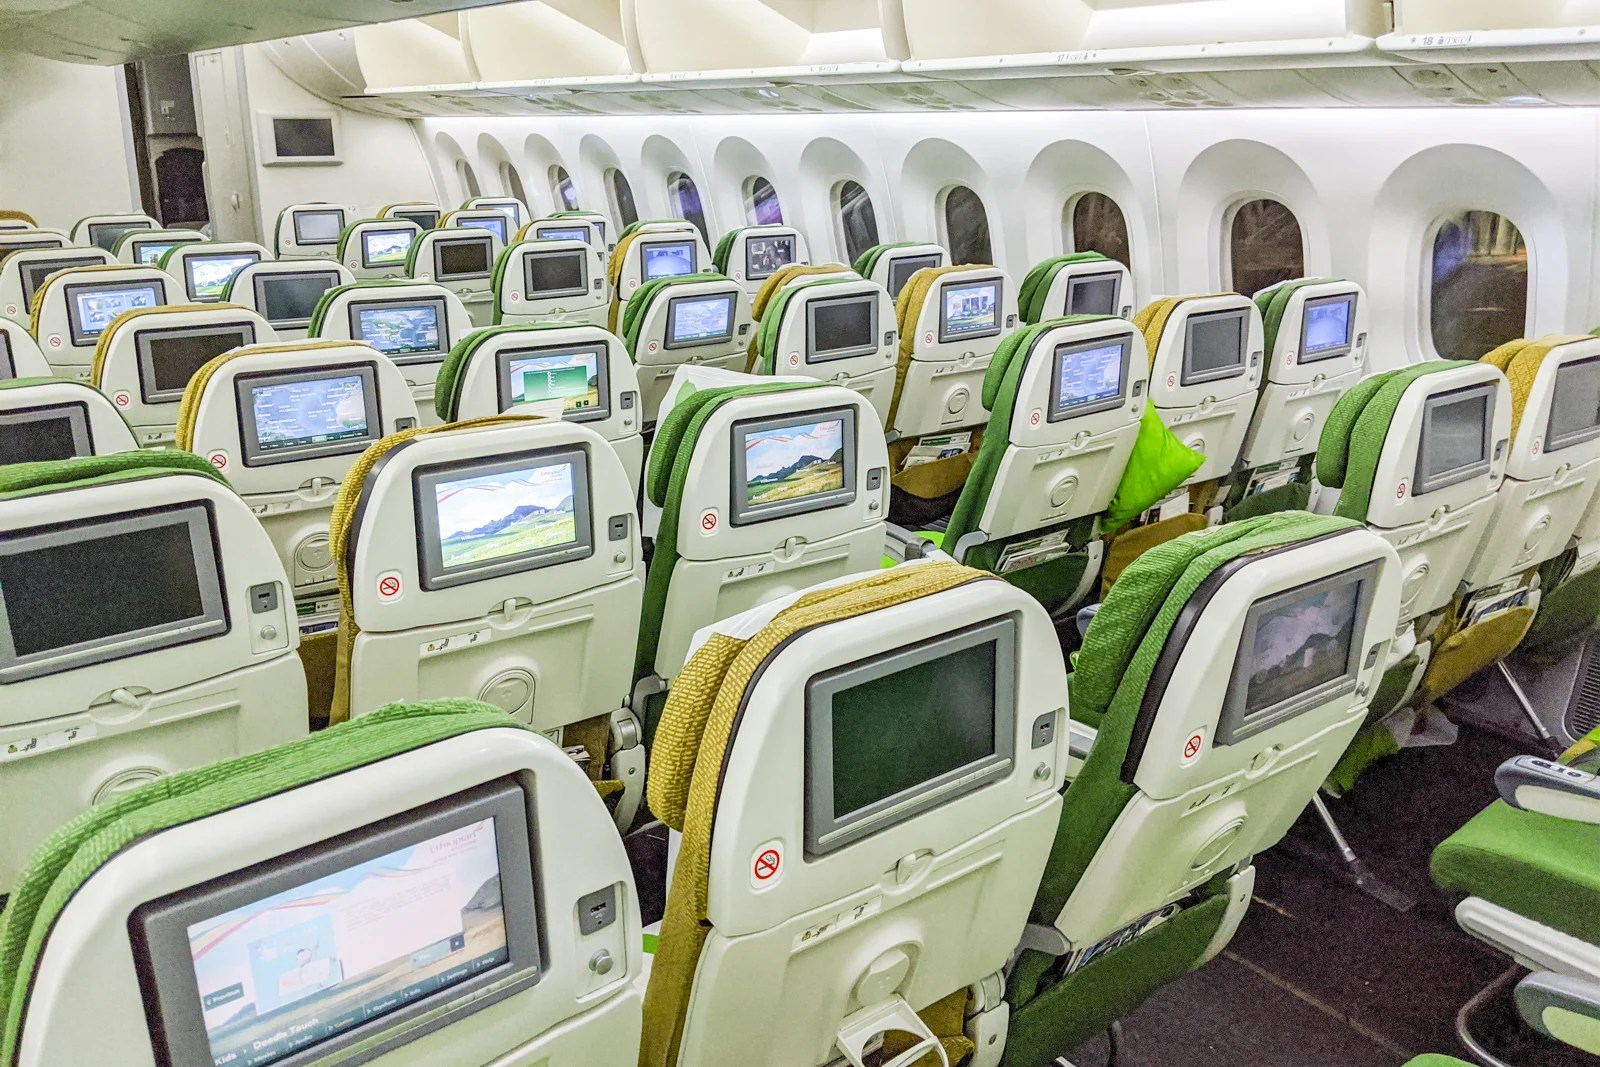 Serious shortcomings: A review of Ethiopian Airlines in economy on the 787-8 from Newark to Lome and back